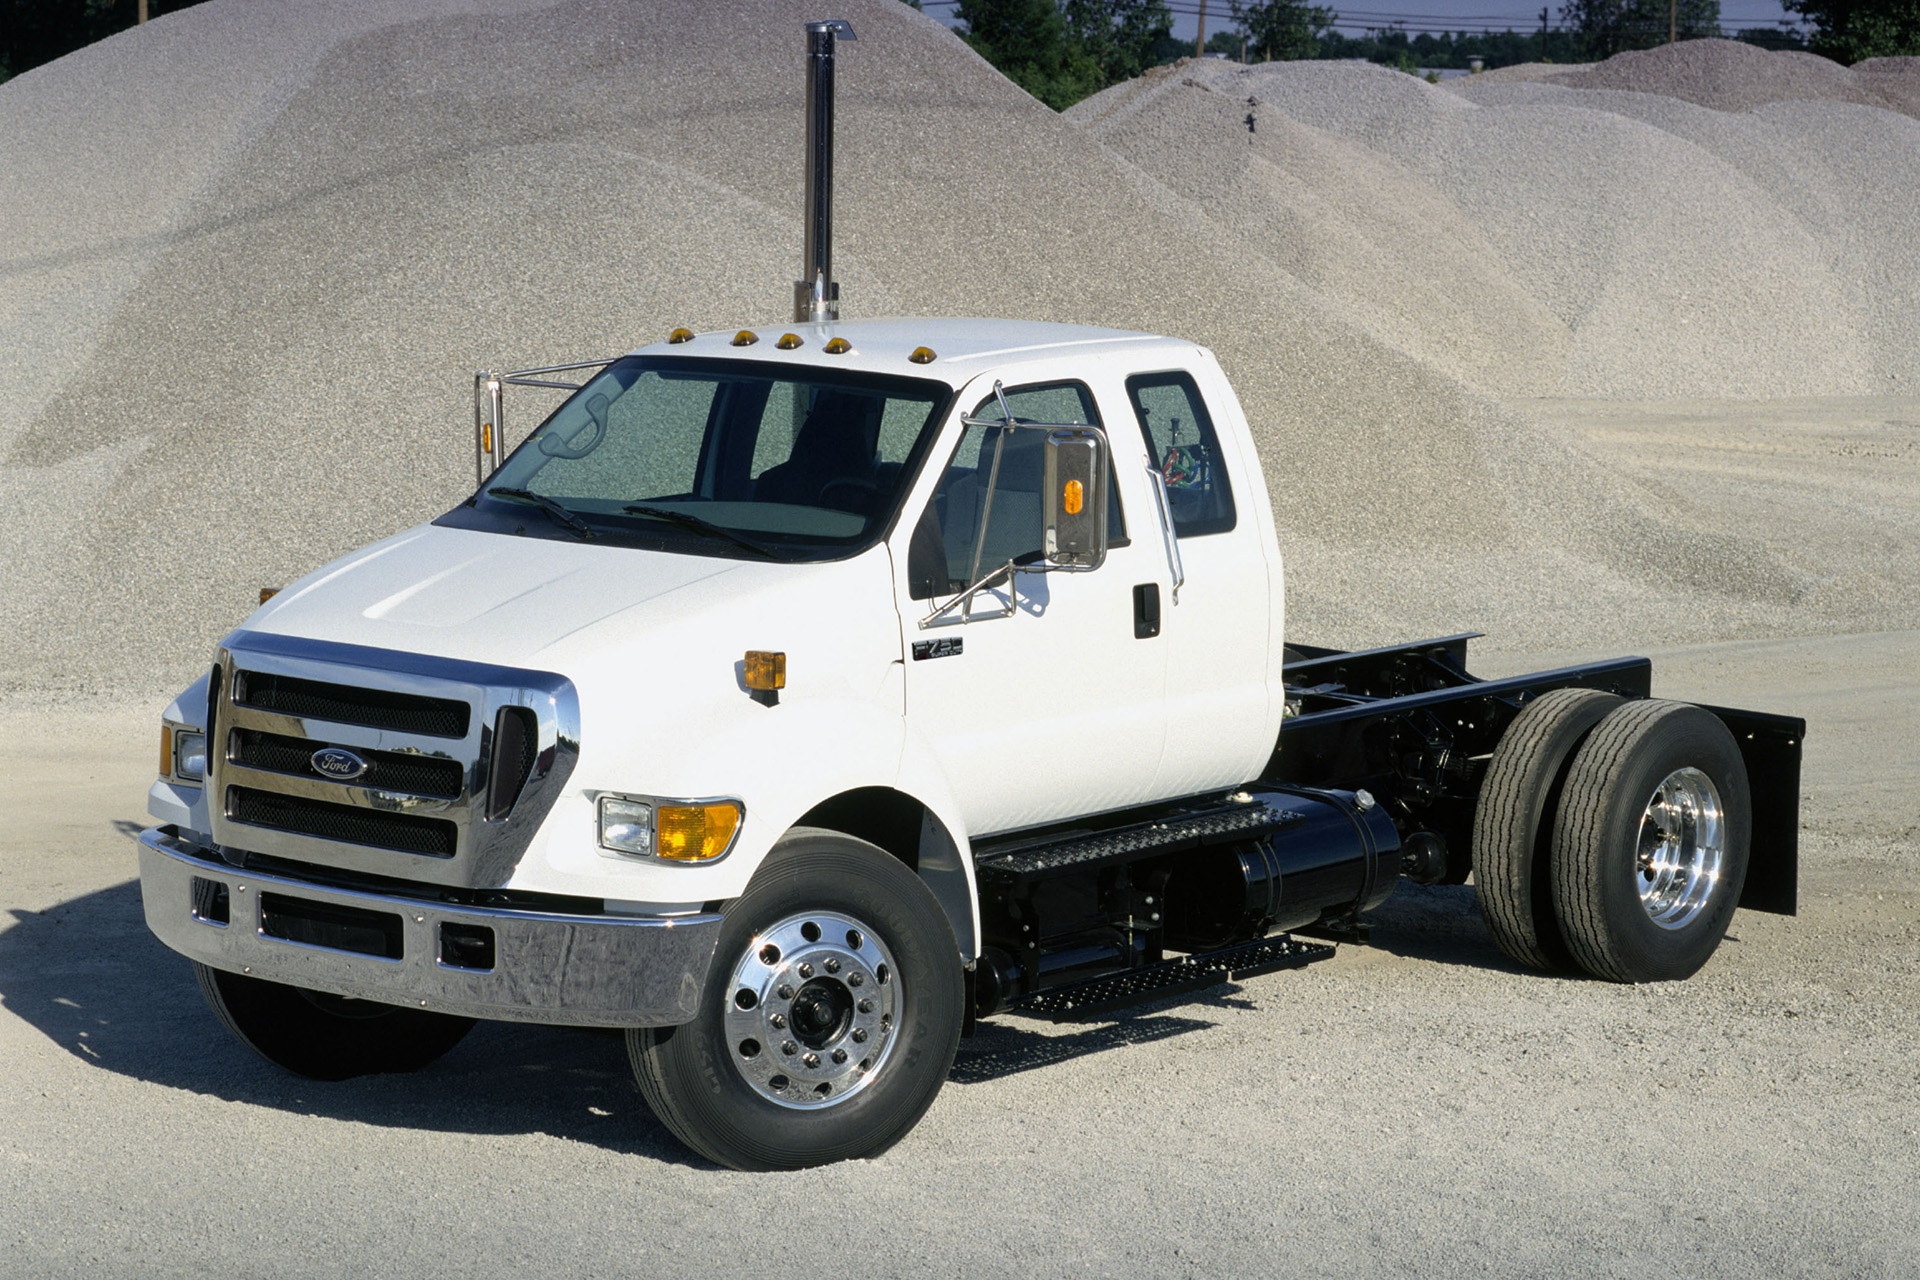 Ford d-750 photo - 4